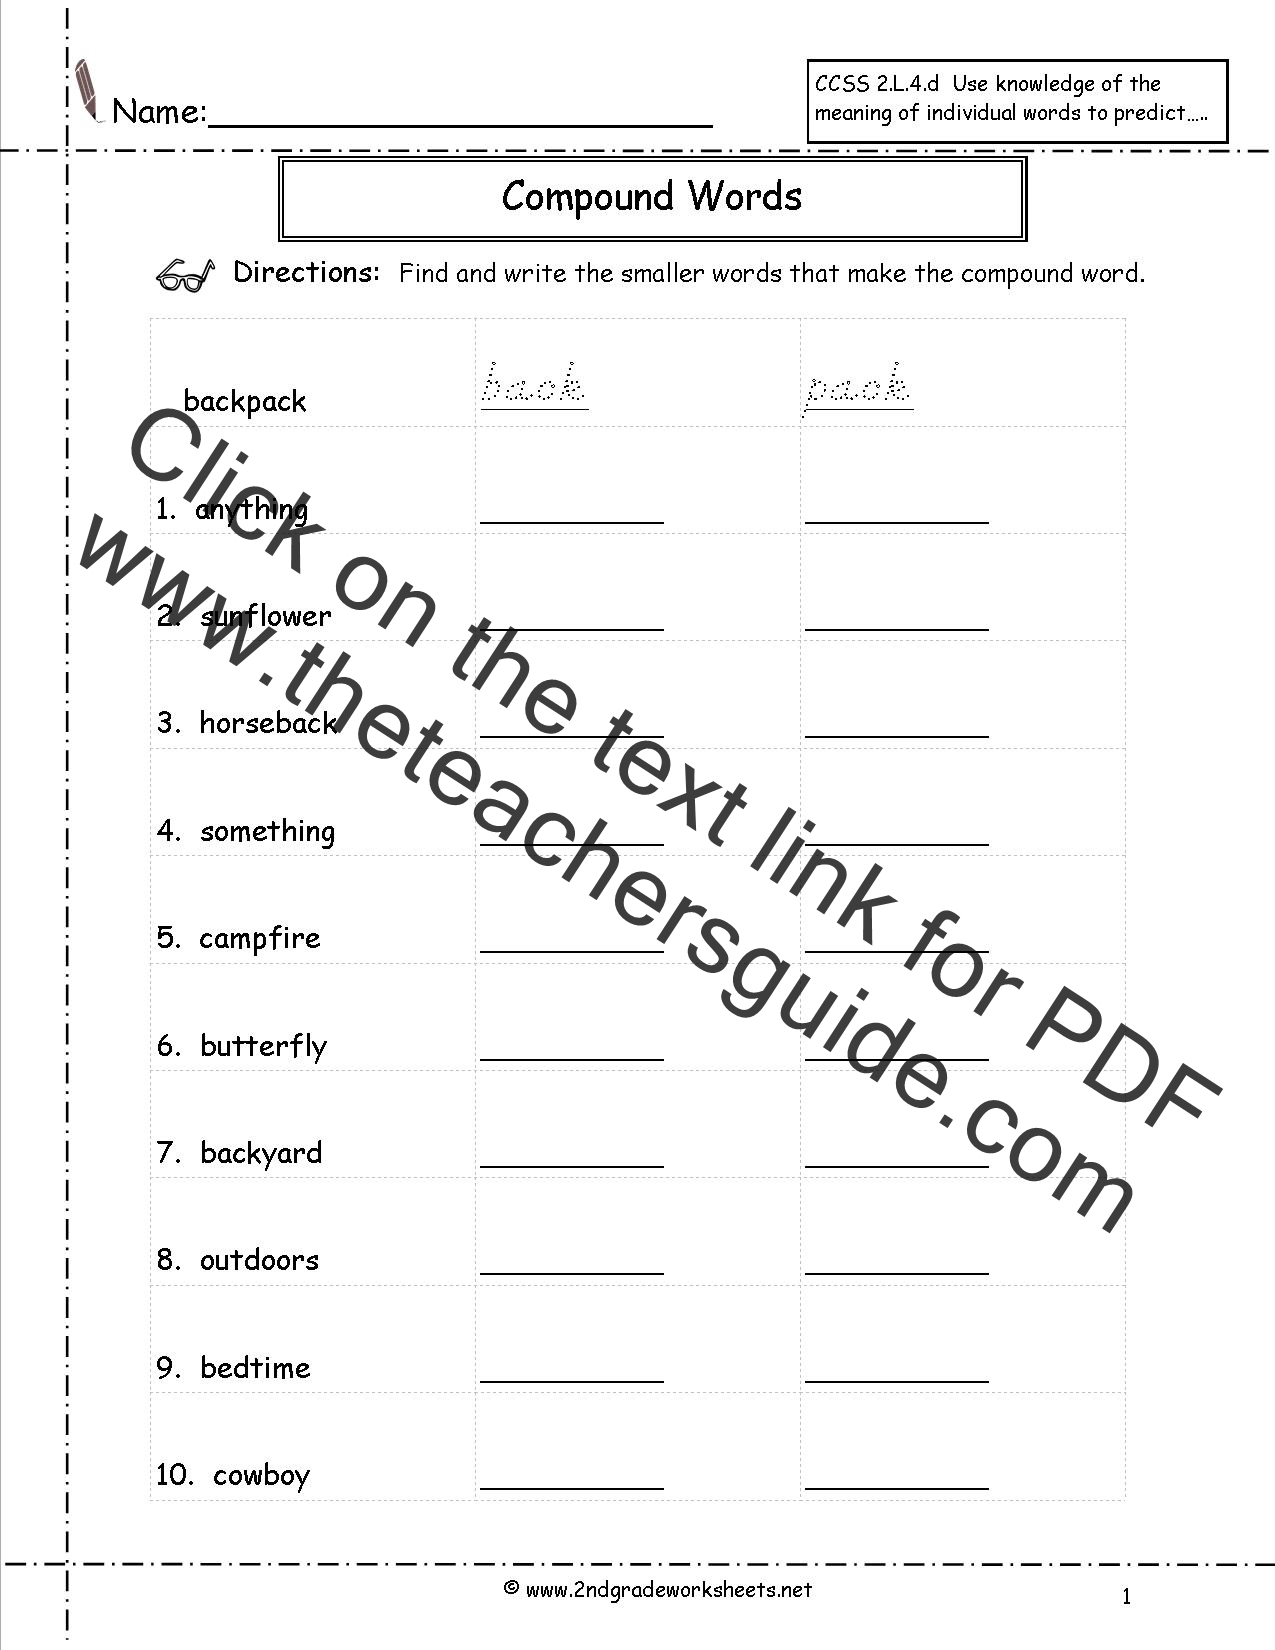 Printables 2nd Grade Grammar Worksheets free languagegrammar worksheets and printouts compound words worksheets